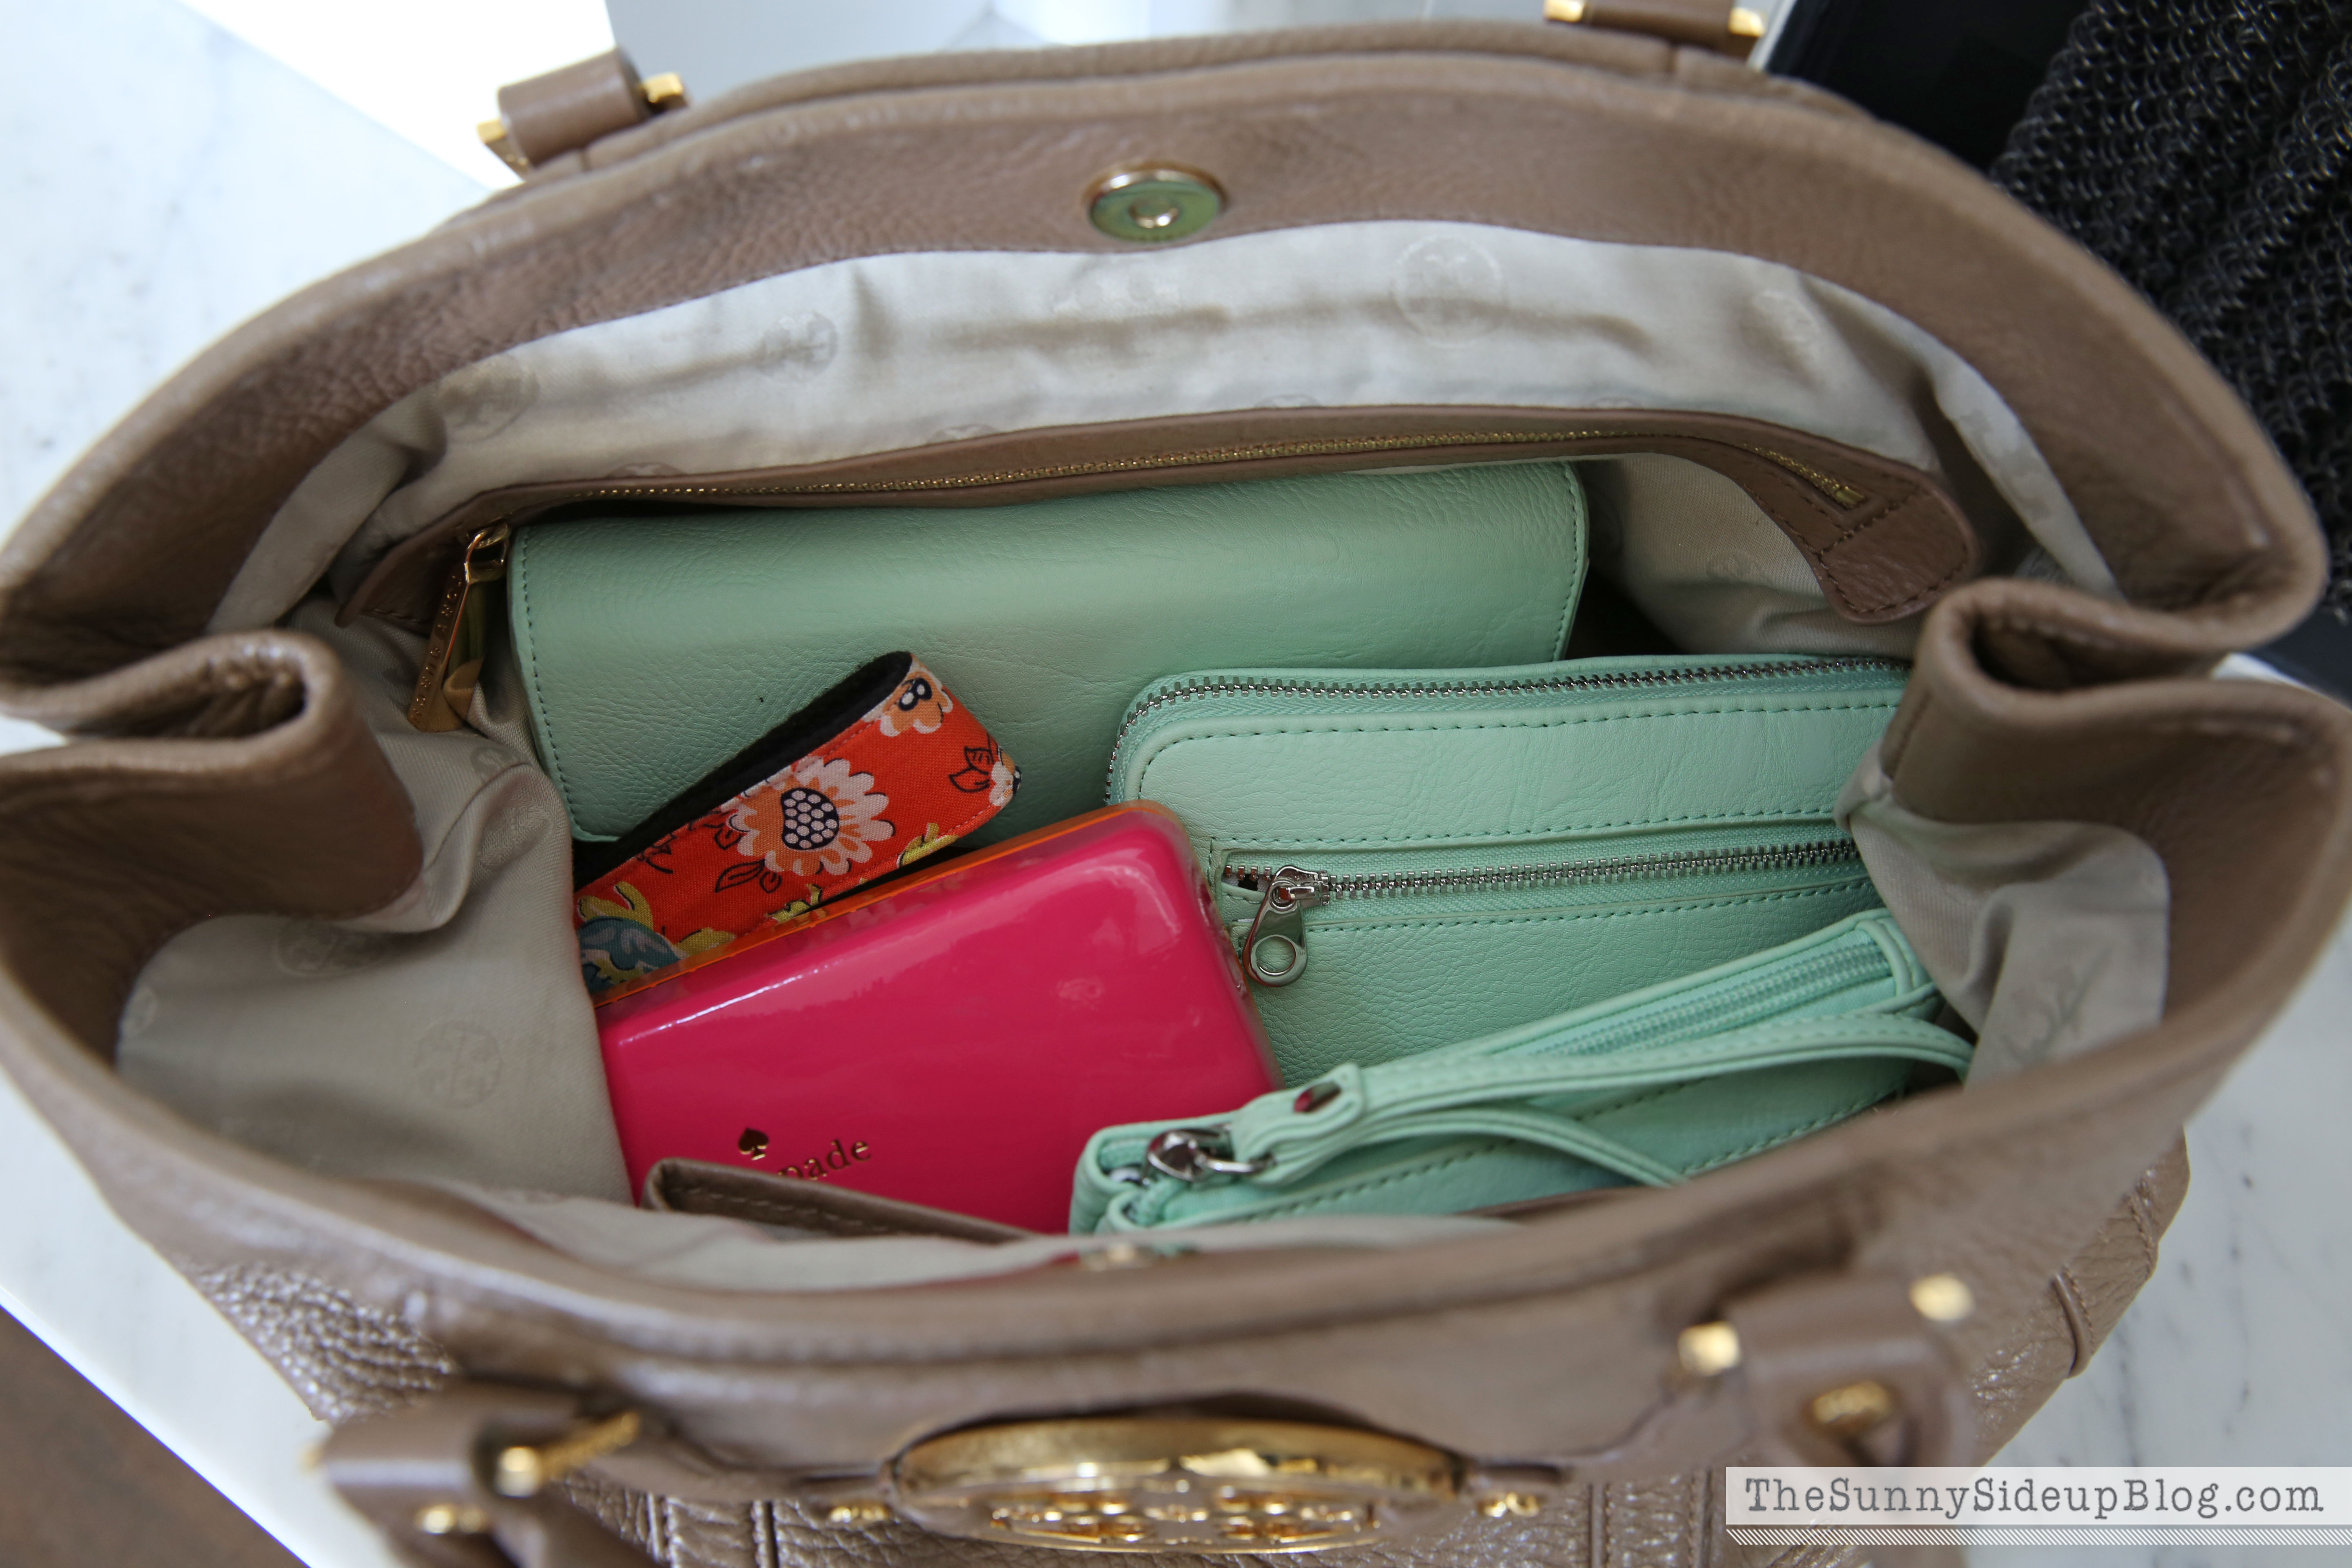 My organized purse and must have items inside!